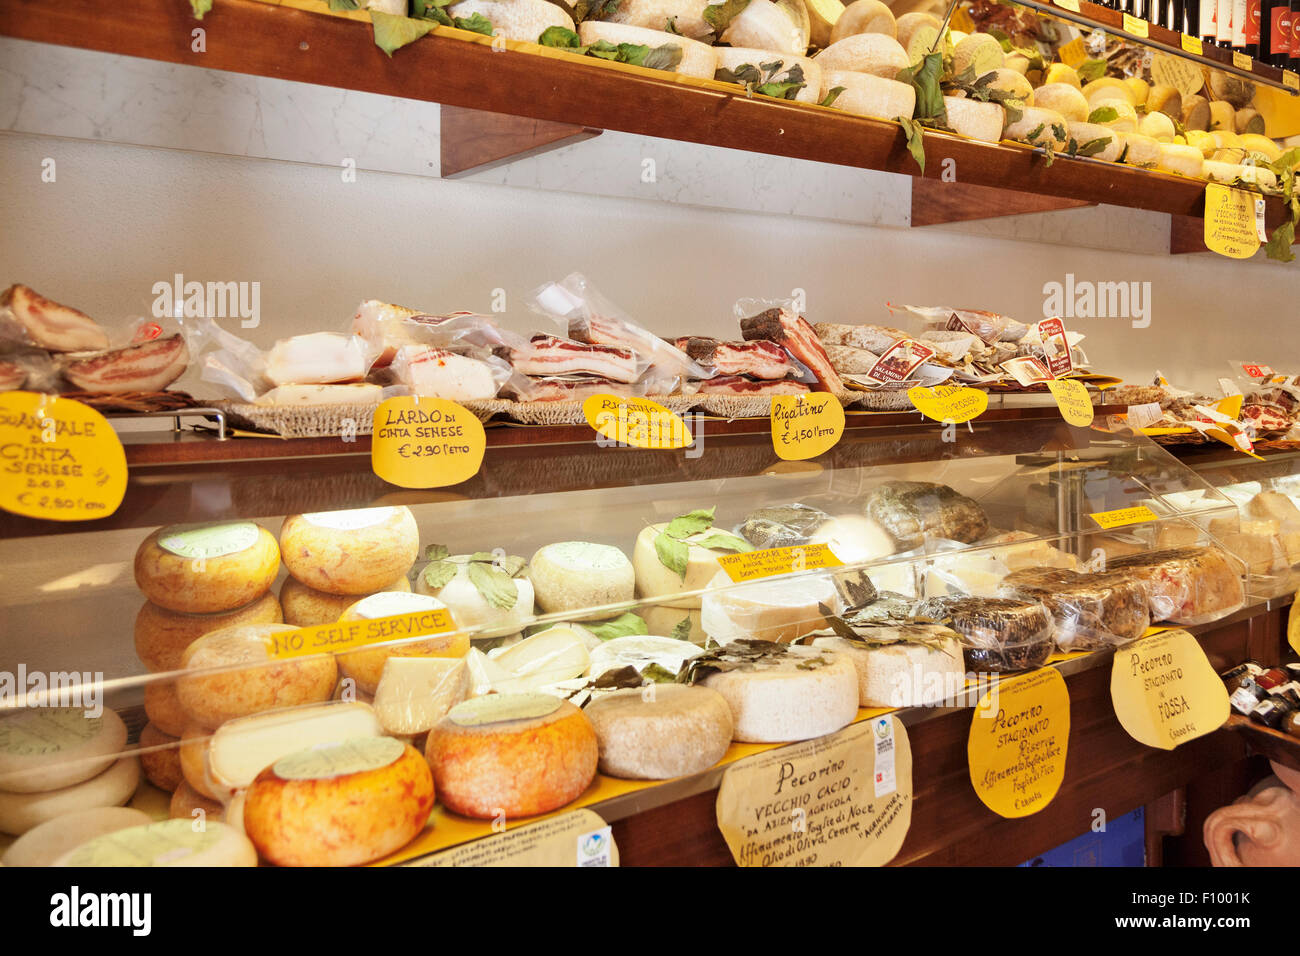 Deli with cheese and Ricatino cured meats, Pienza, Val d'Orcia, Tuscany, Province of Siena, Italy - Stock Image